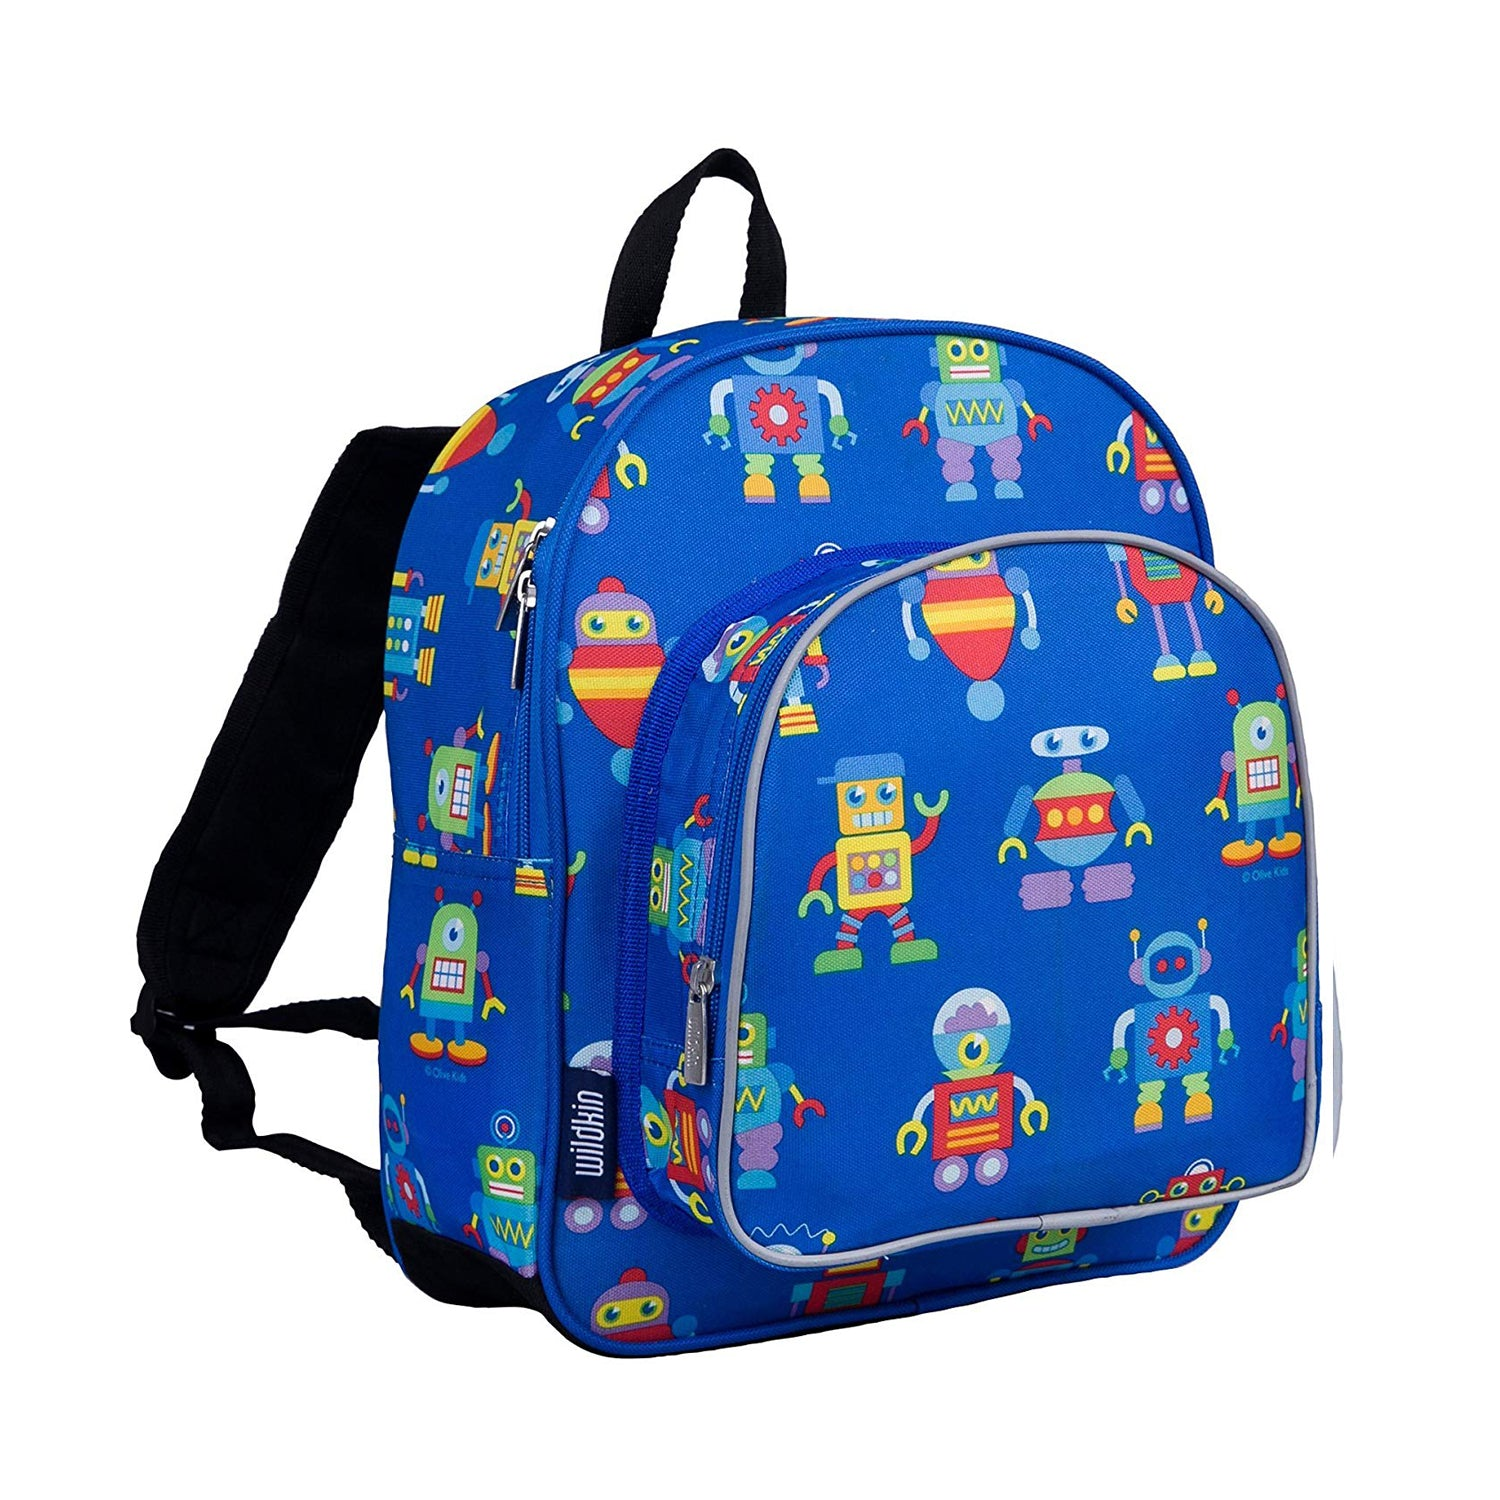 Robots Toddler Backpack